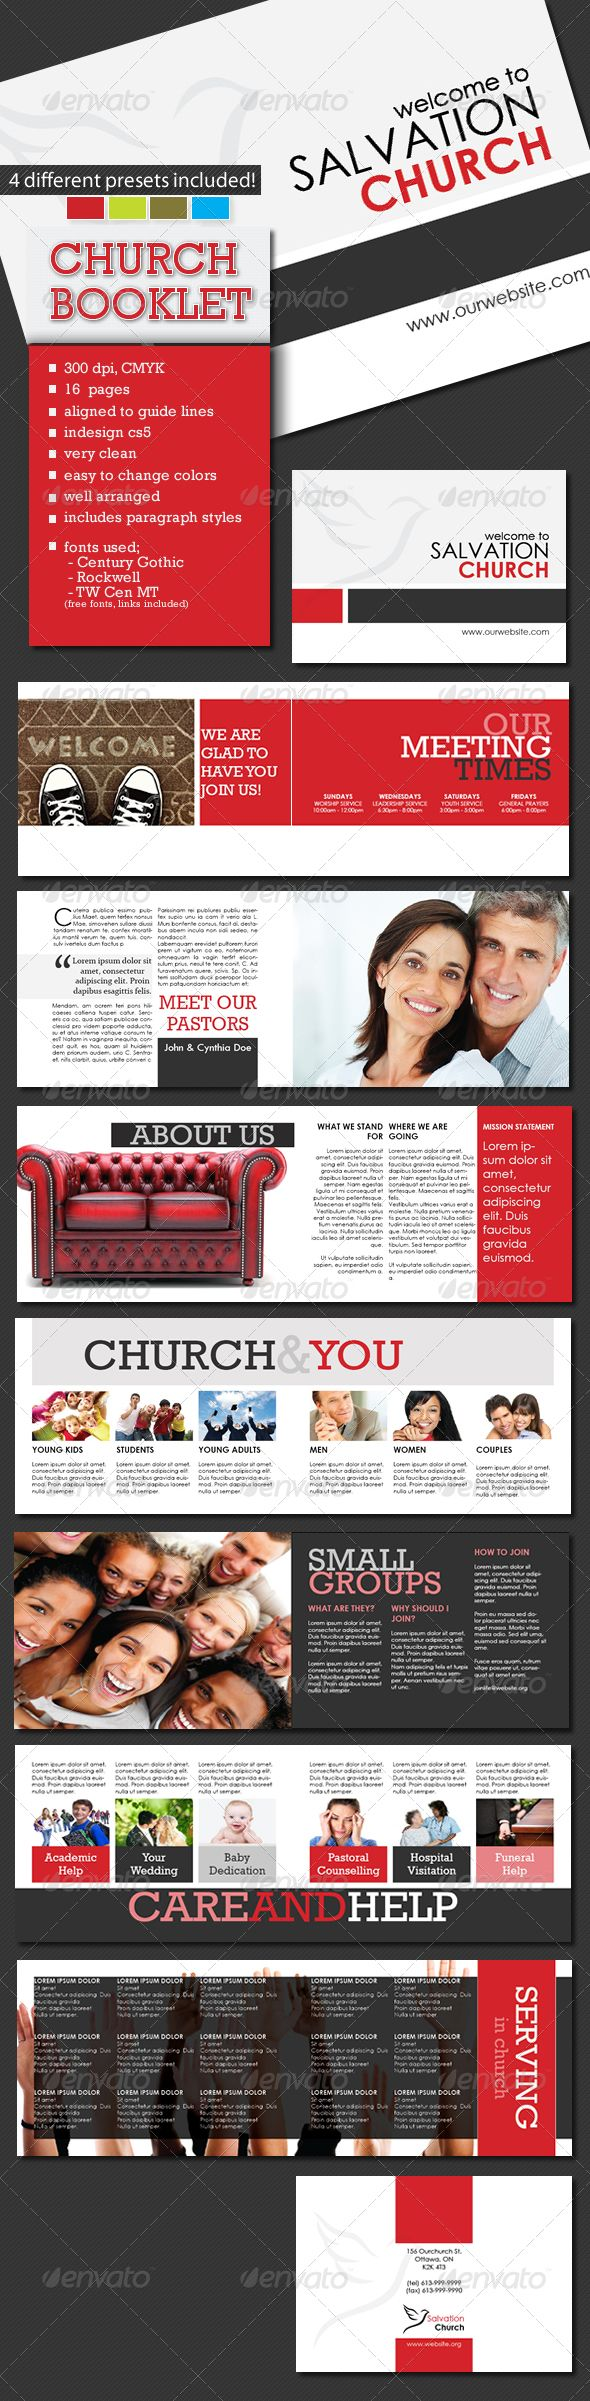 A5 Church Booklet Template - 16 Pages | Booklet template ...